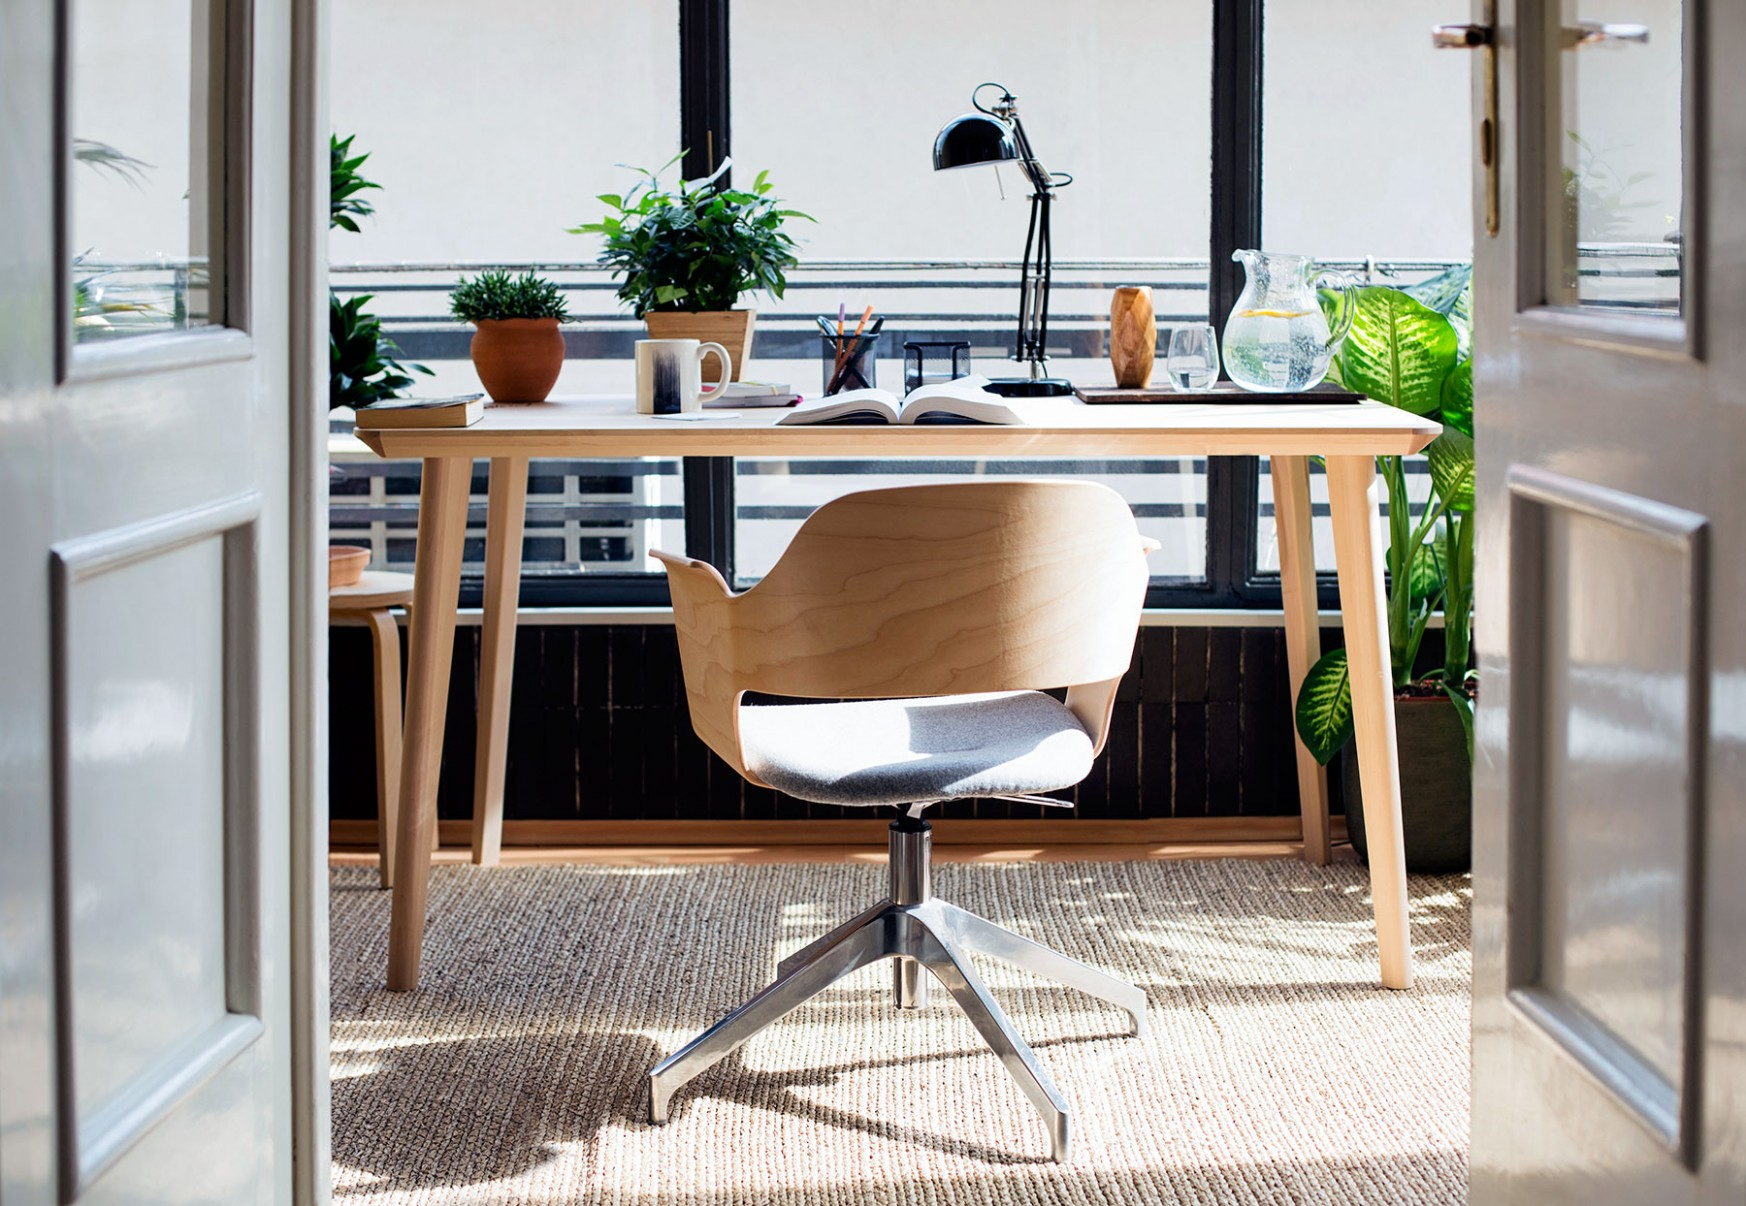 11 Home Office Ideas That Will Make You Want to Work All Day  - Home Office Ideas In Dining Room